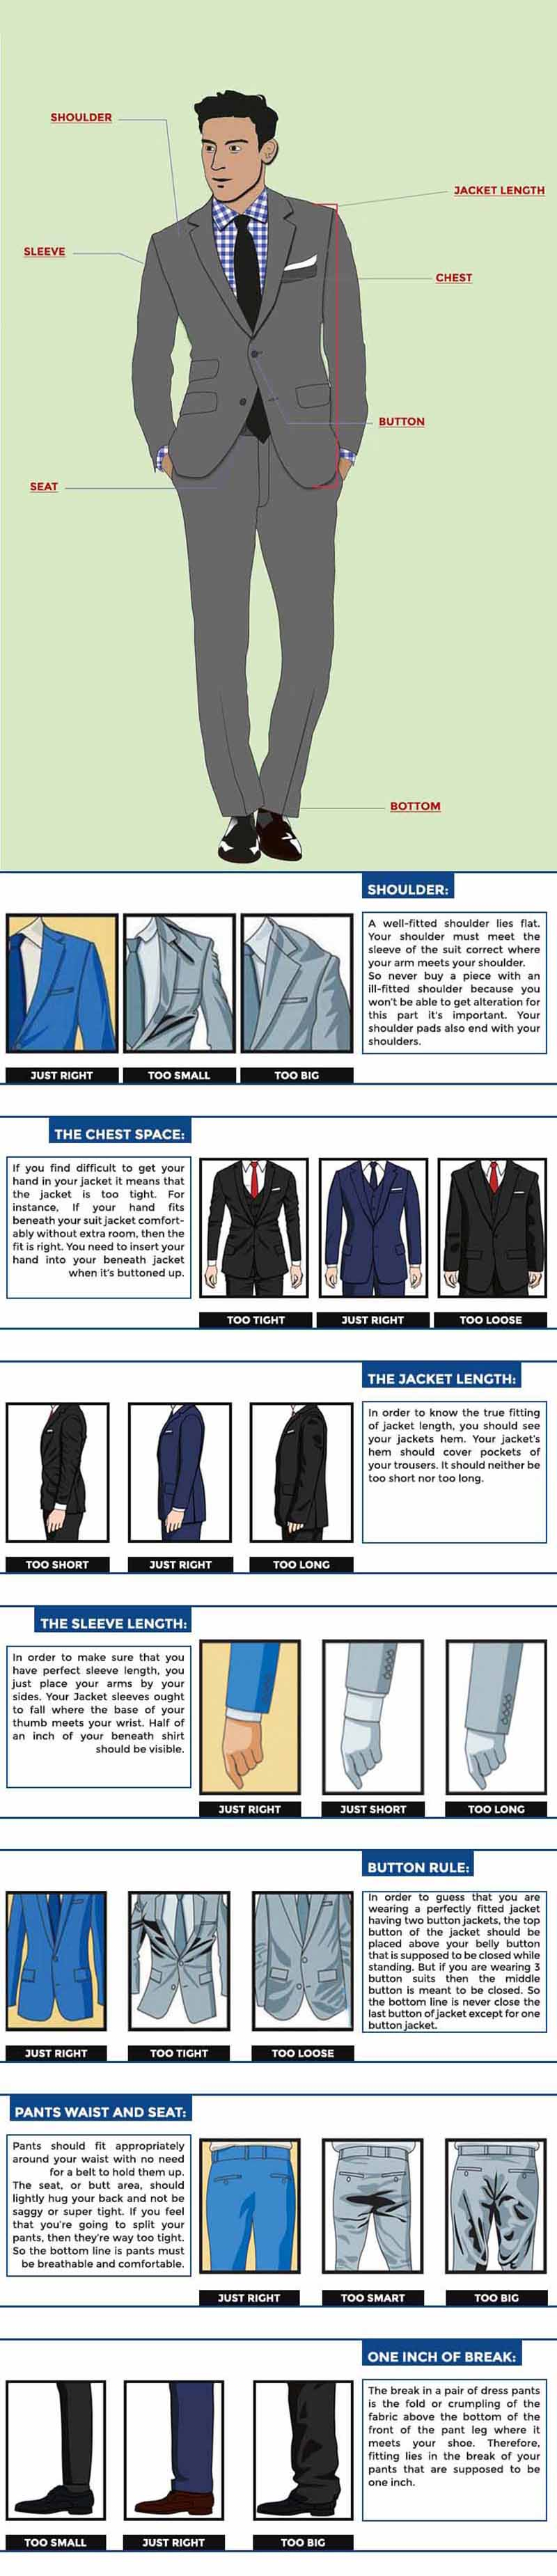 Perfect fitting guide for your suit [Infographic]